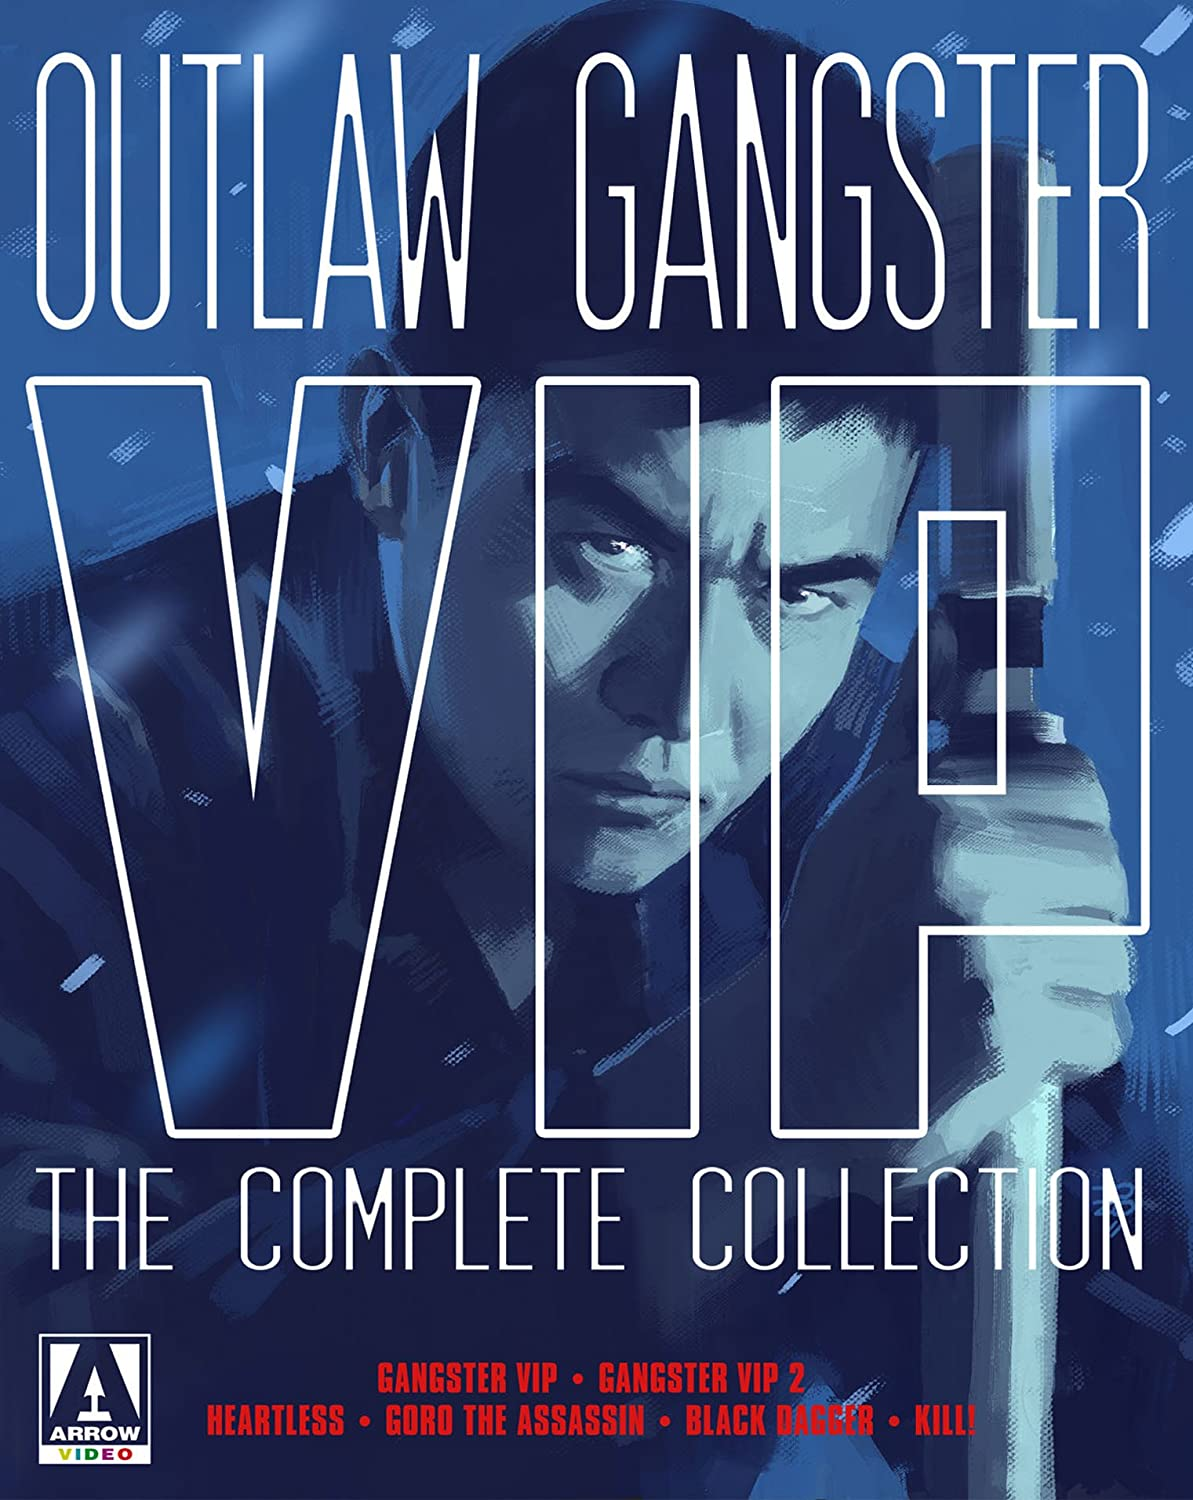 Outlaw Gangster VIP Collection